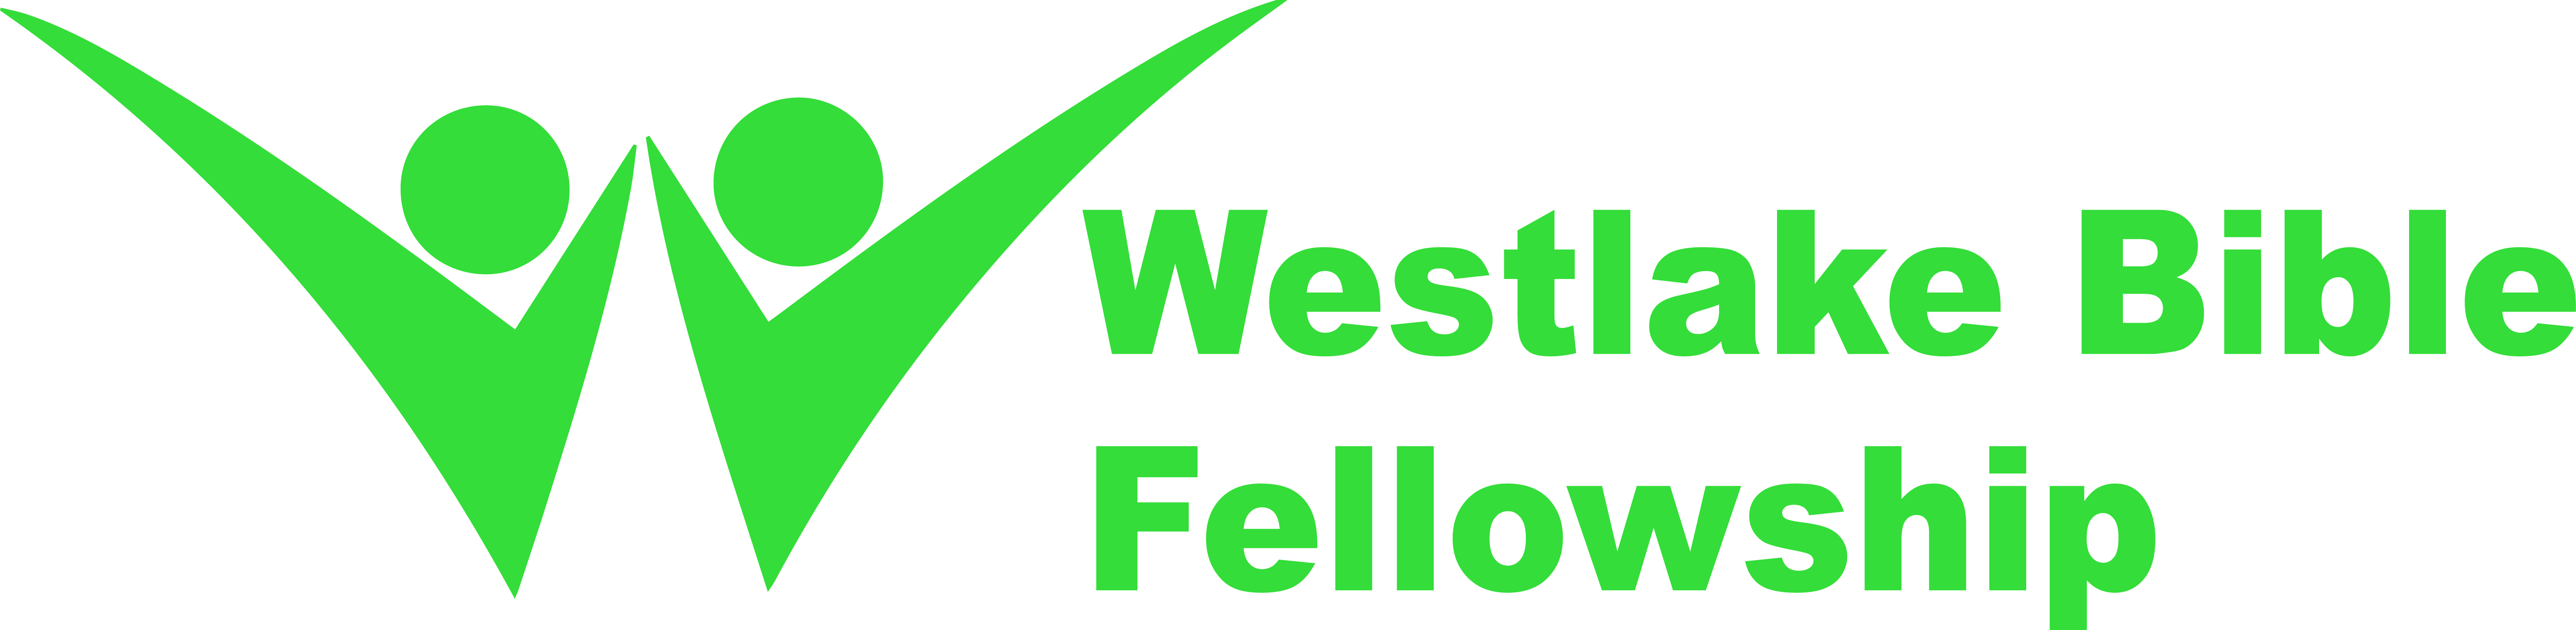 Westlake Bible Fellowship